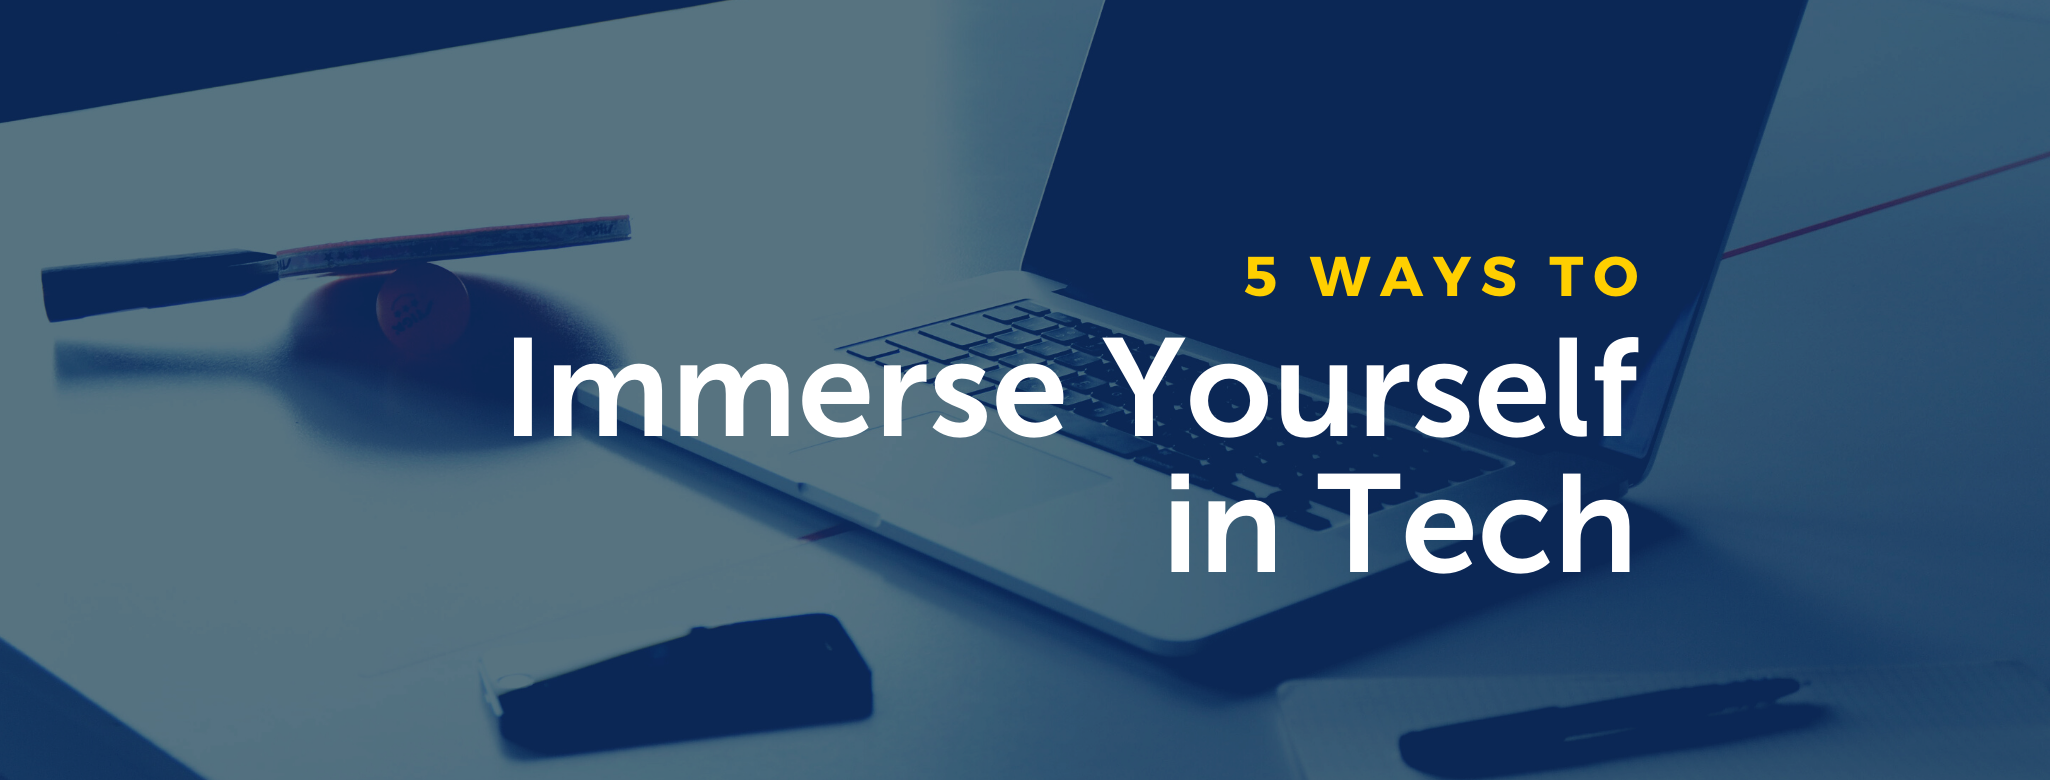 5 Ways to Immerse Yourself in Tech